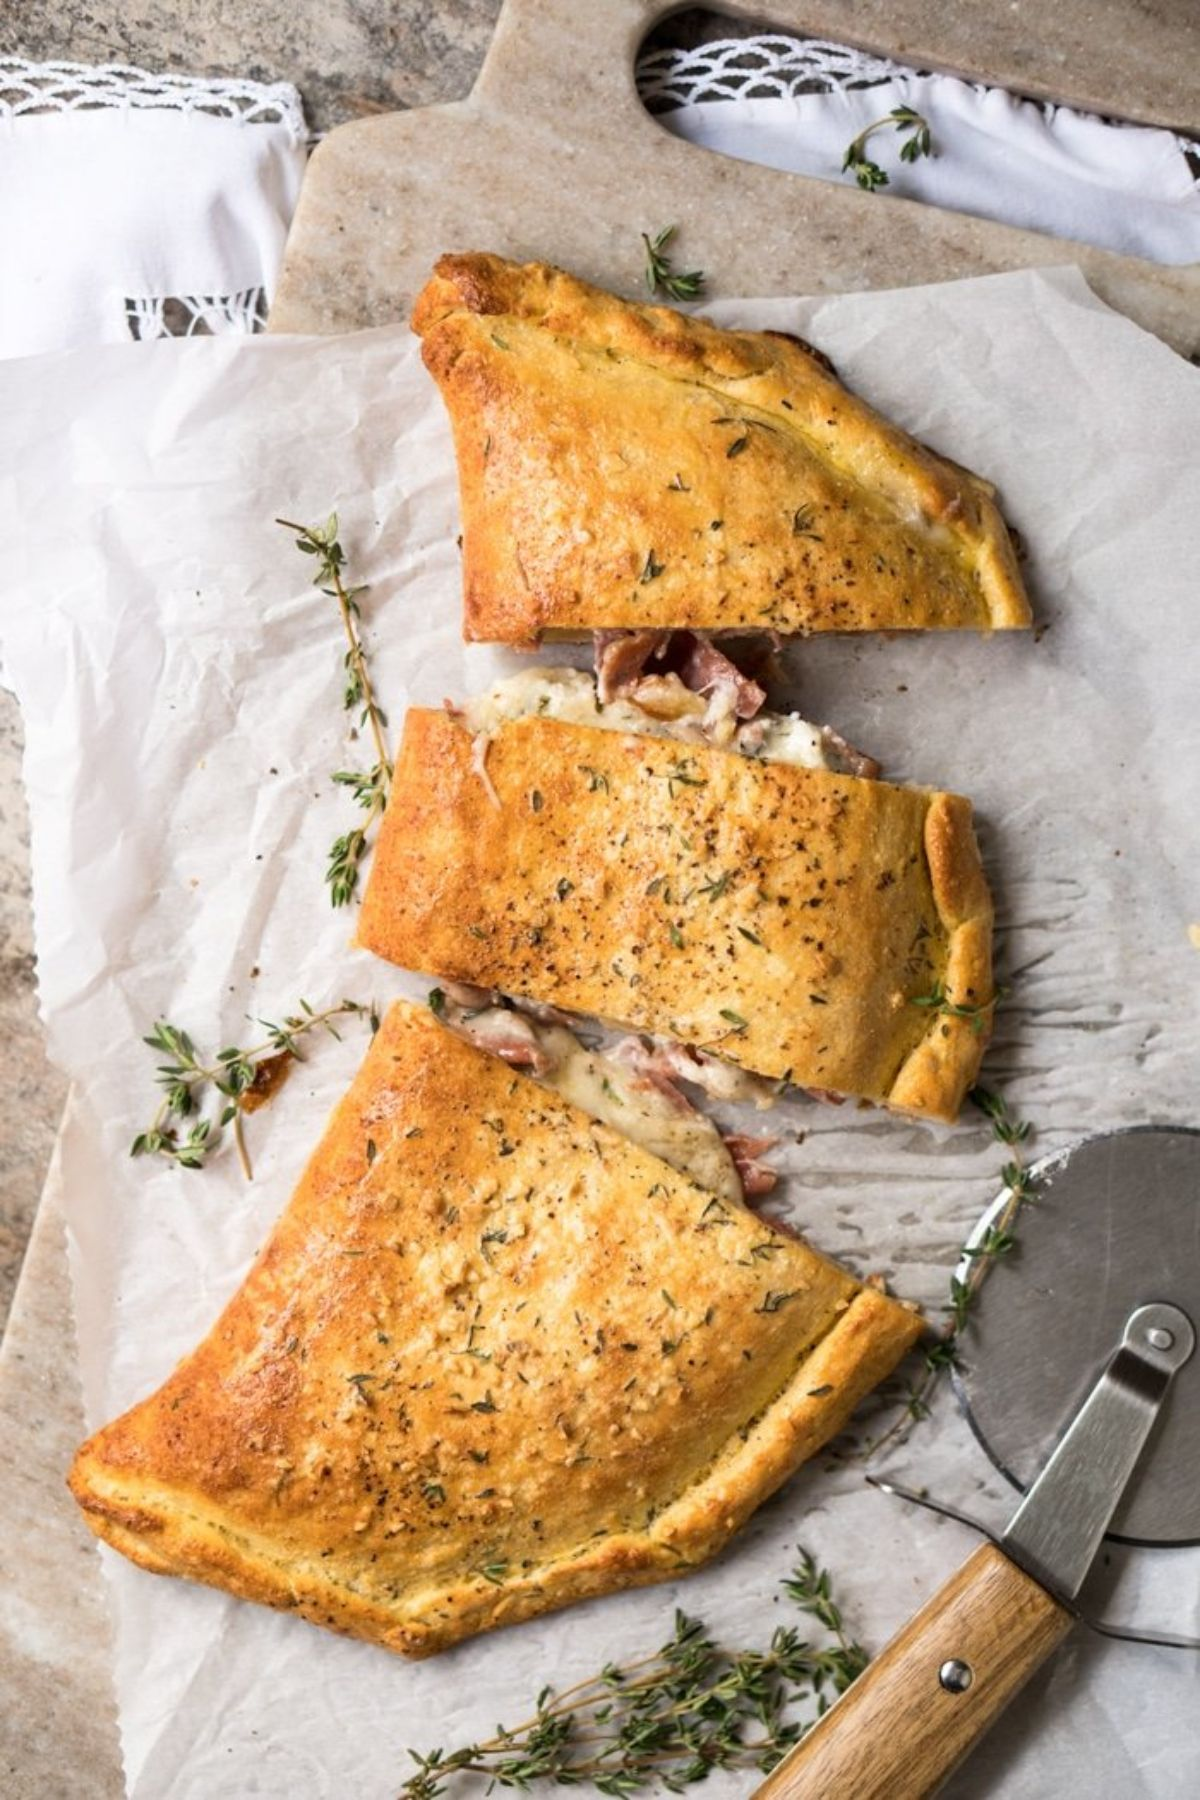 a calzone sliced into 3 pices with a pizza wheel on a baking parchmetn and board